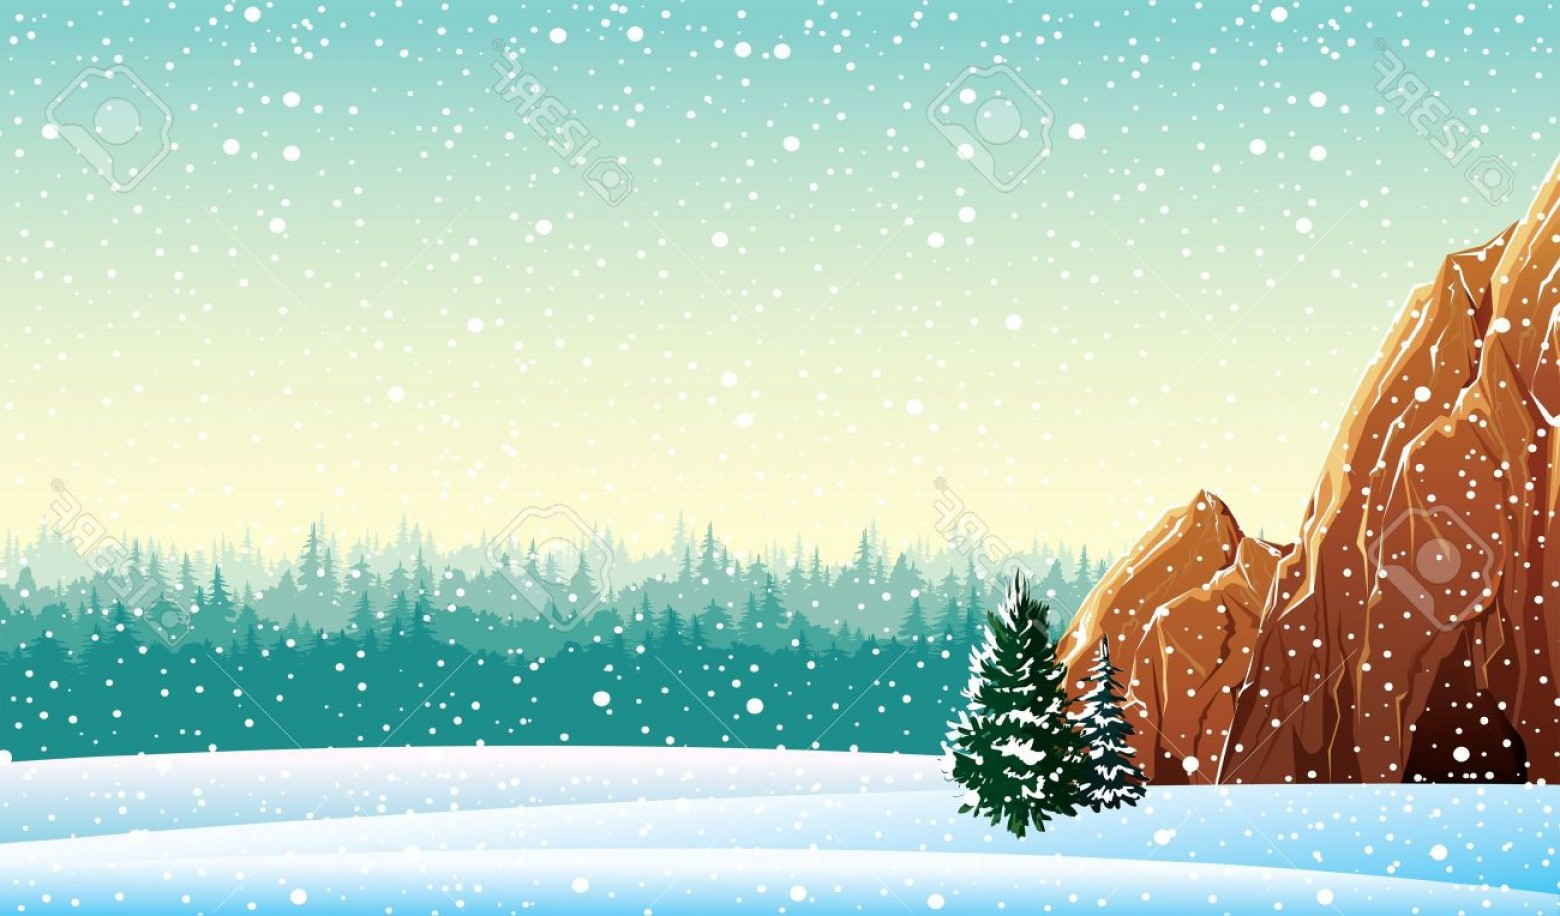 Free Winter Vector: Photowinter Vector Landscape With Rock And Forest